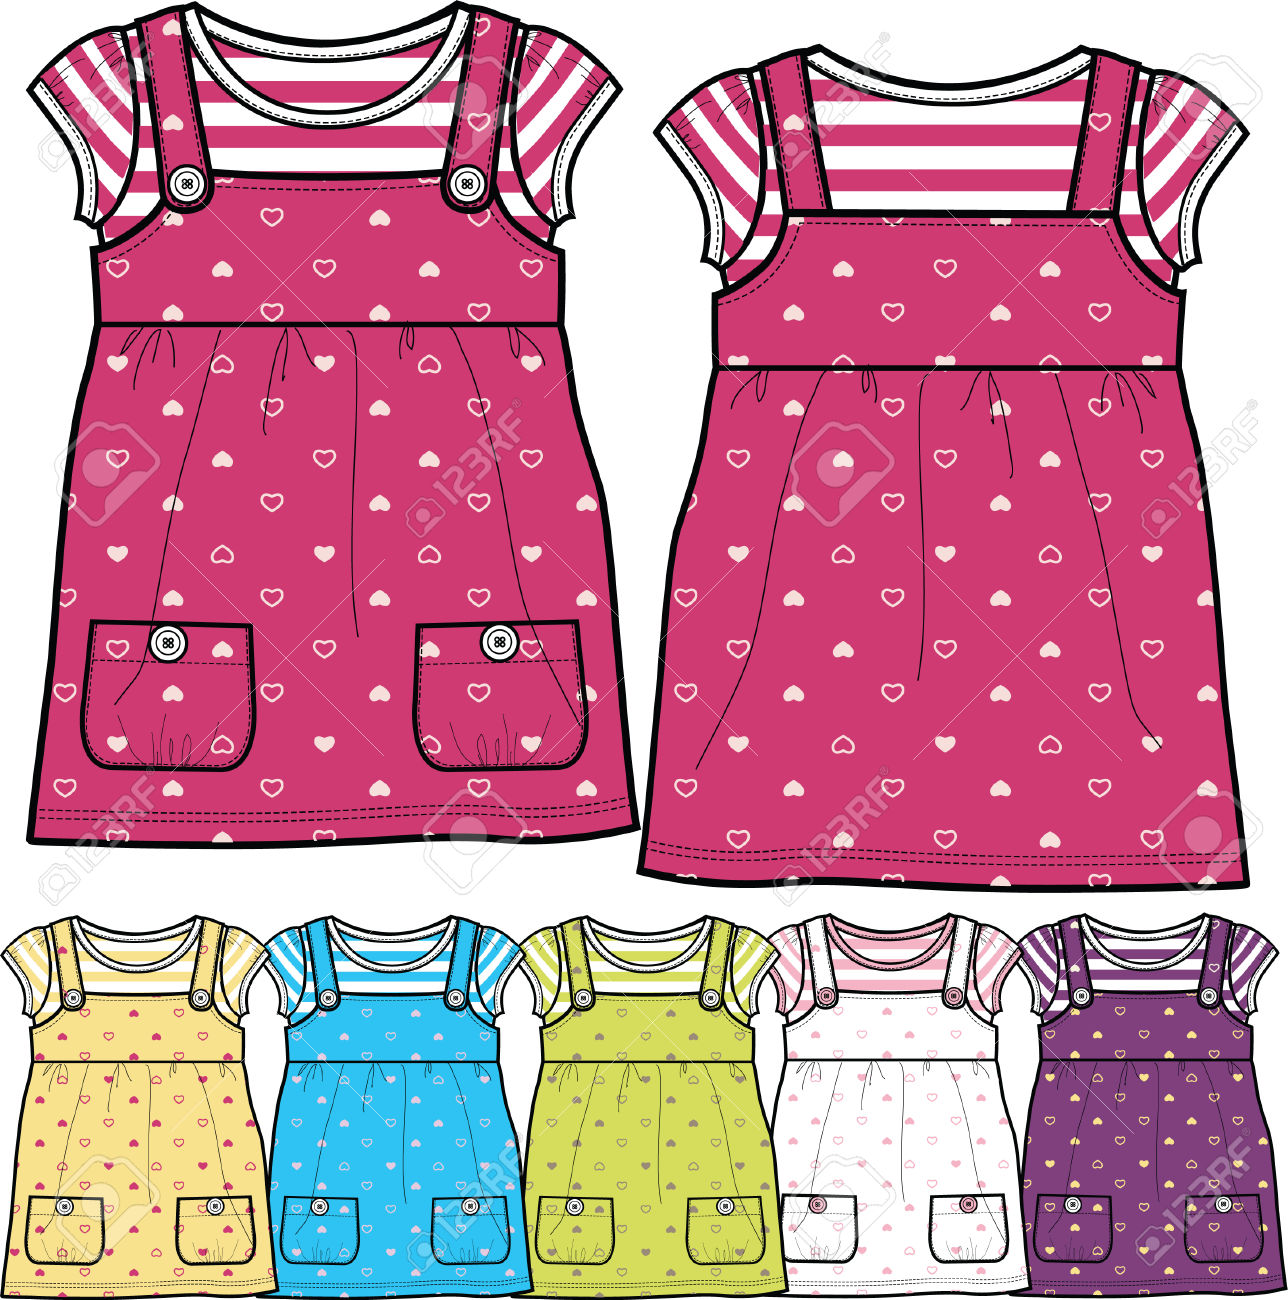 Fancy clothes clipart dress jpg library download Girl Fancy Tops Royalty Free Cliparts, Vectors, And Stock ... jpg library download